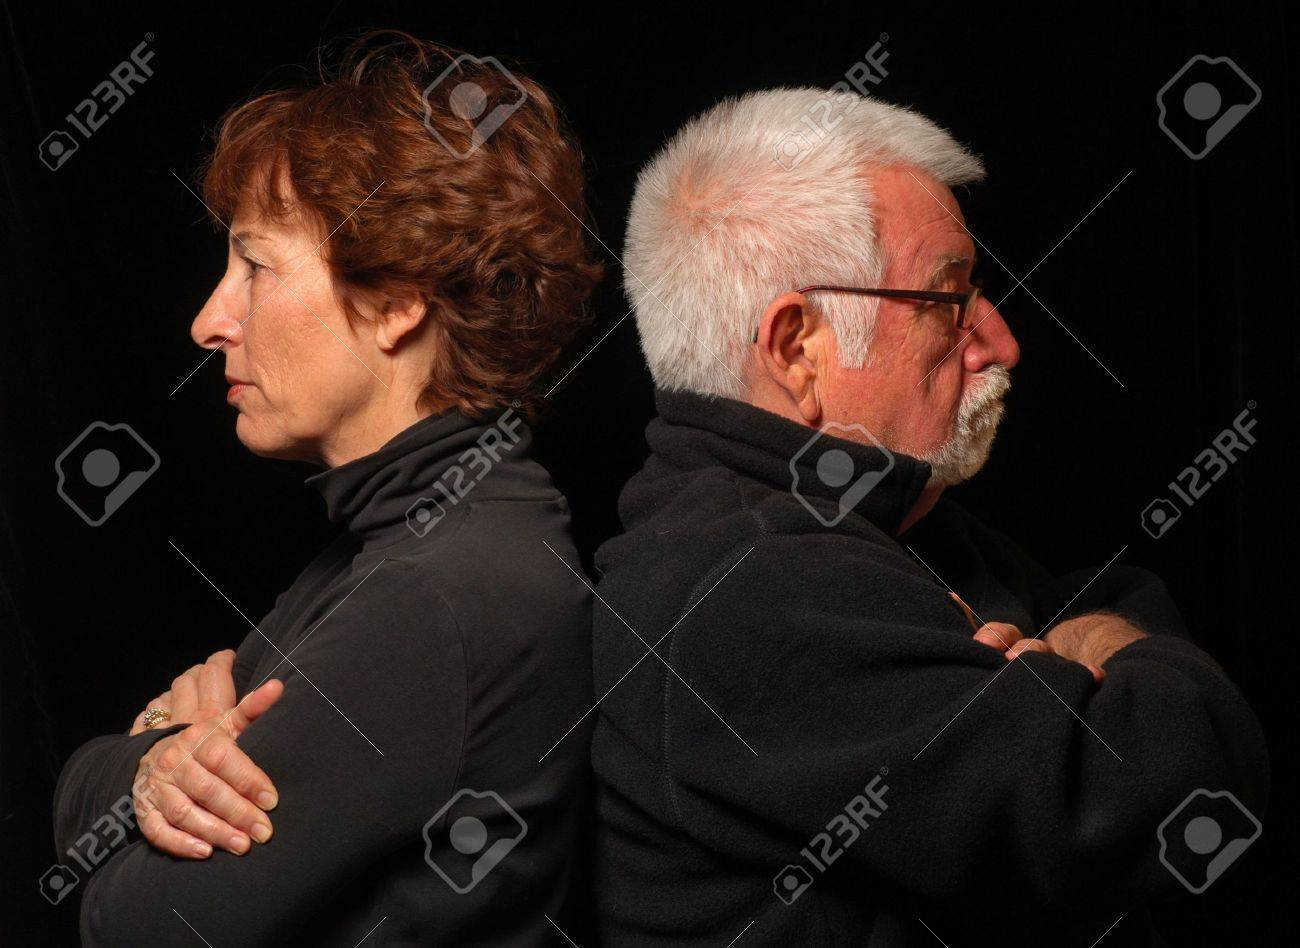 Couple at an impasse Stock Photo - 378368